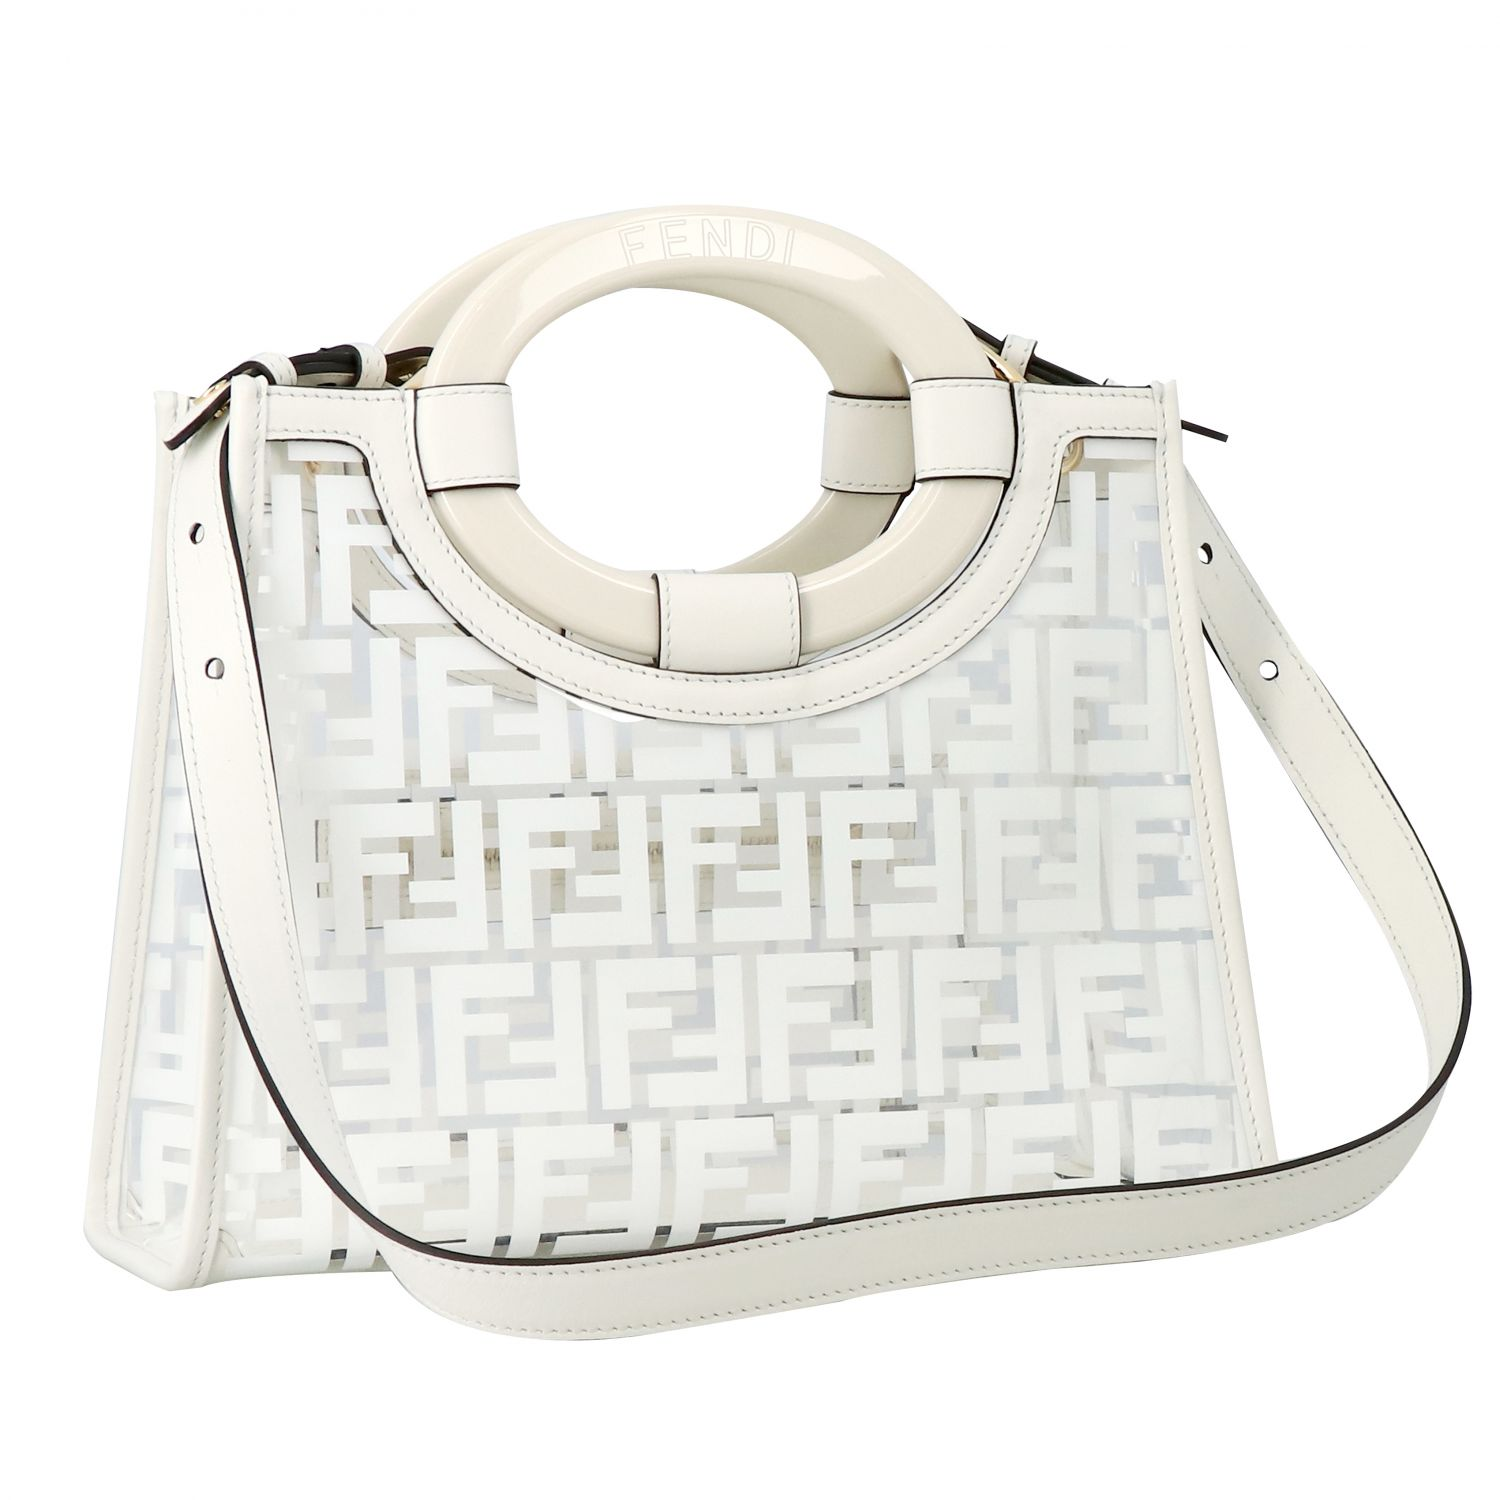 Handbag Fendi: Shoulder bag women Fendi white 2